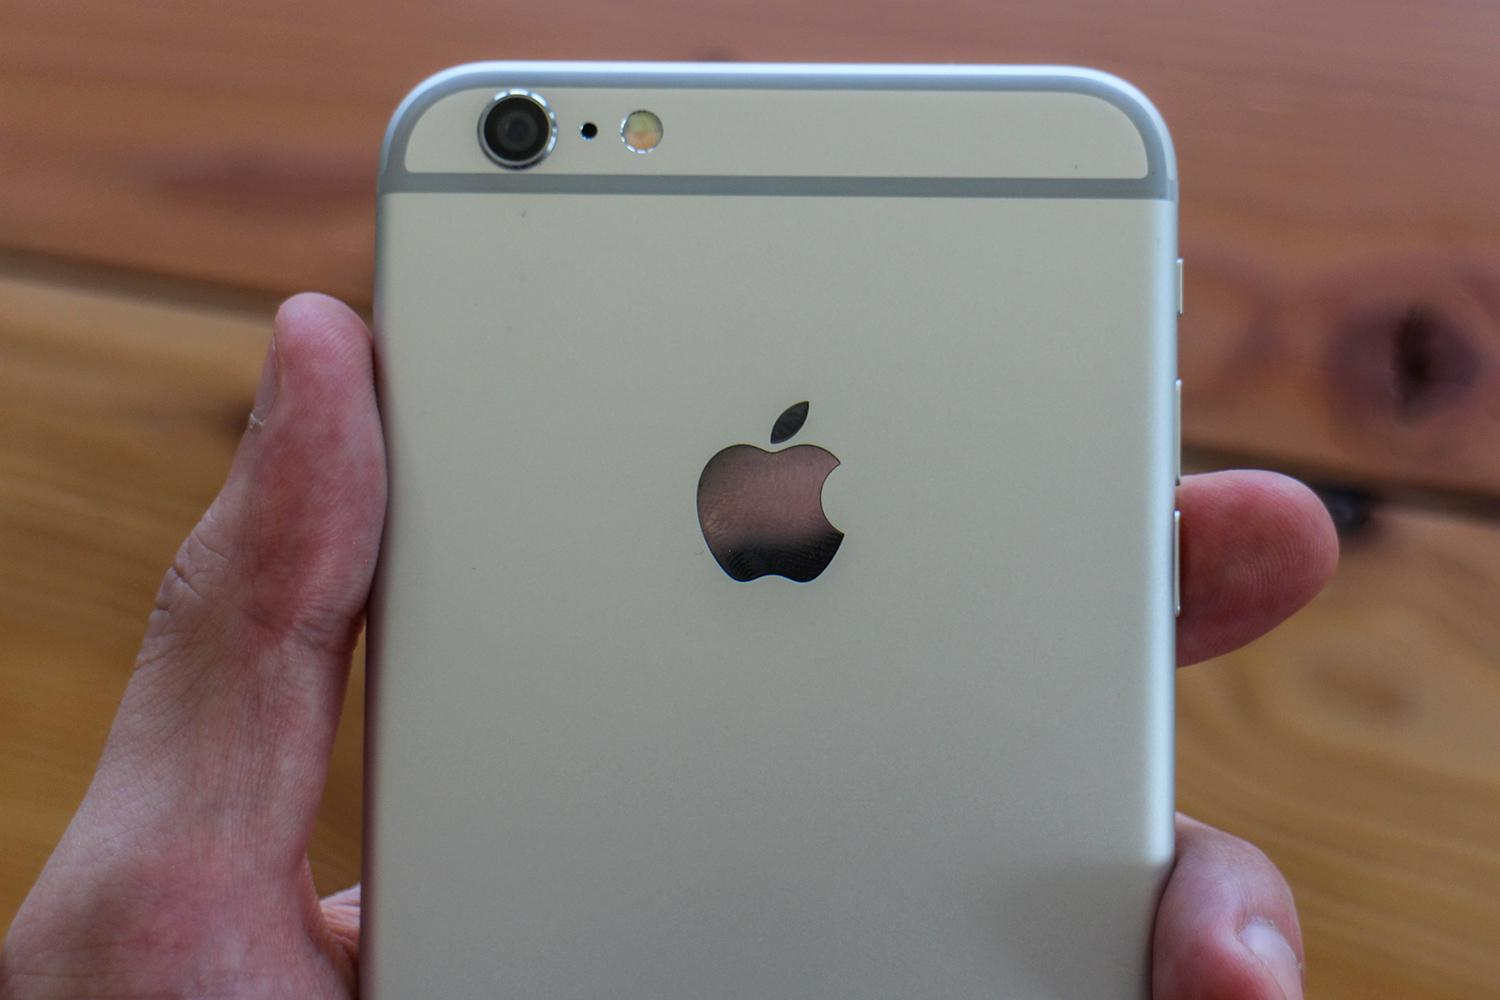 Iphone 6 Sales Slow On Chinese Black Market on minimalist cabin homes